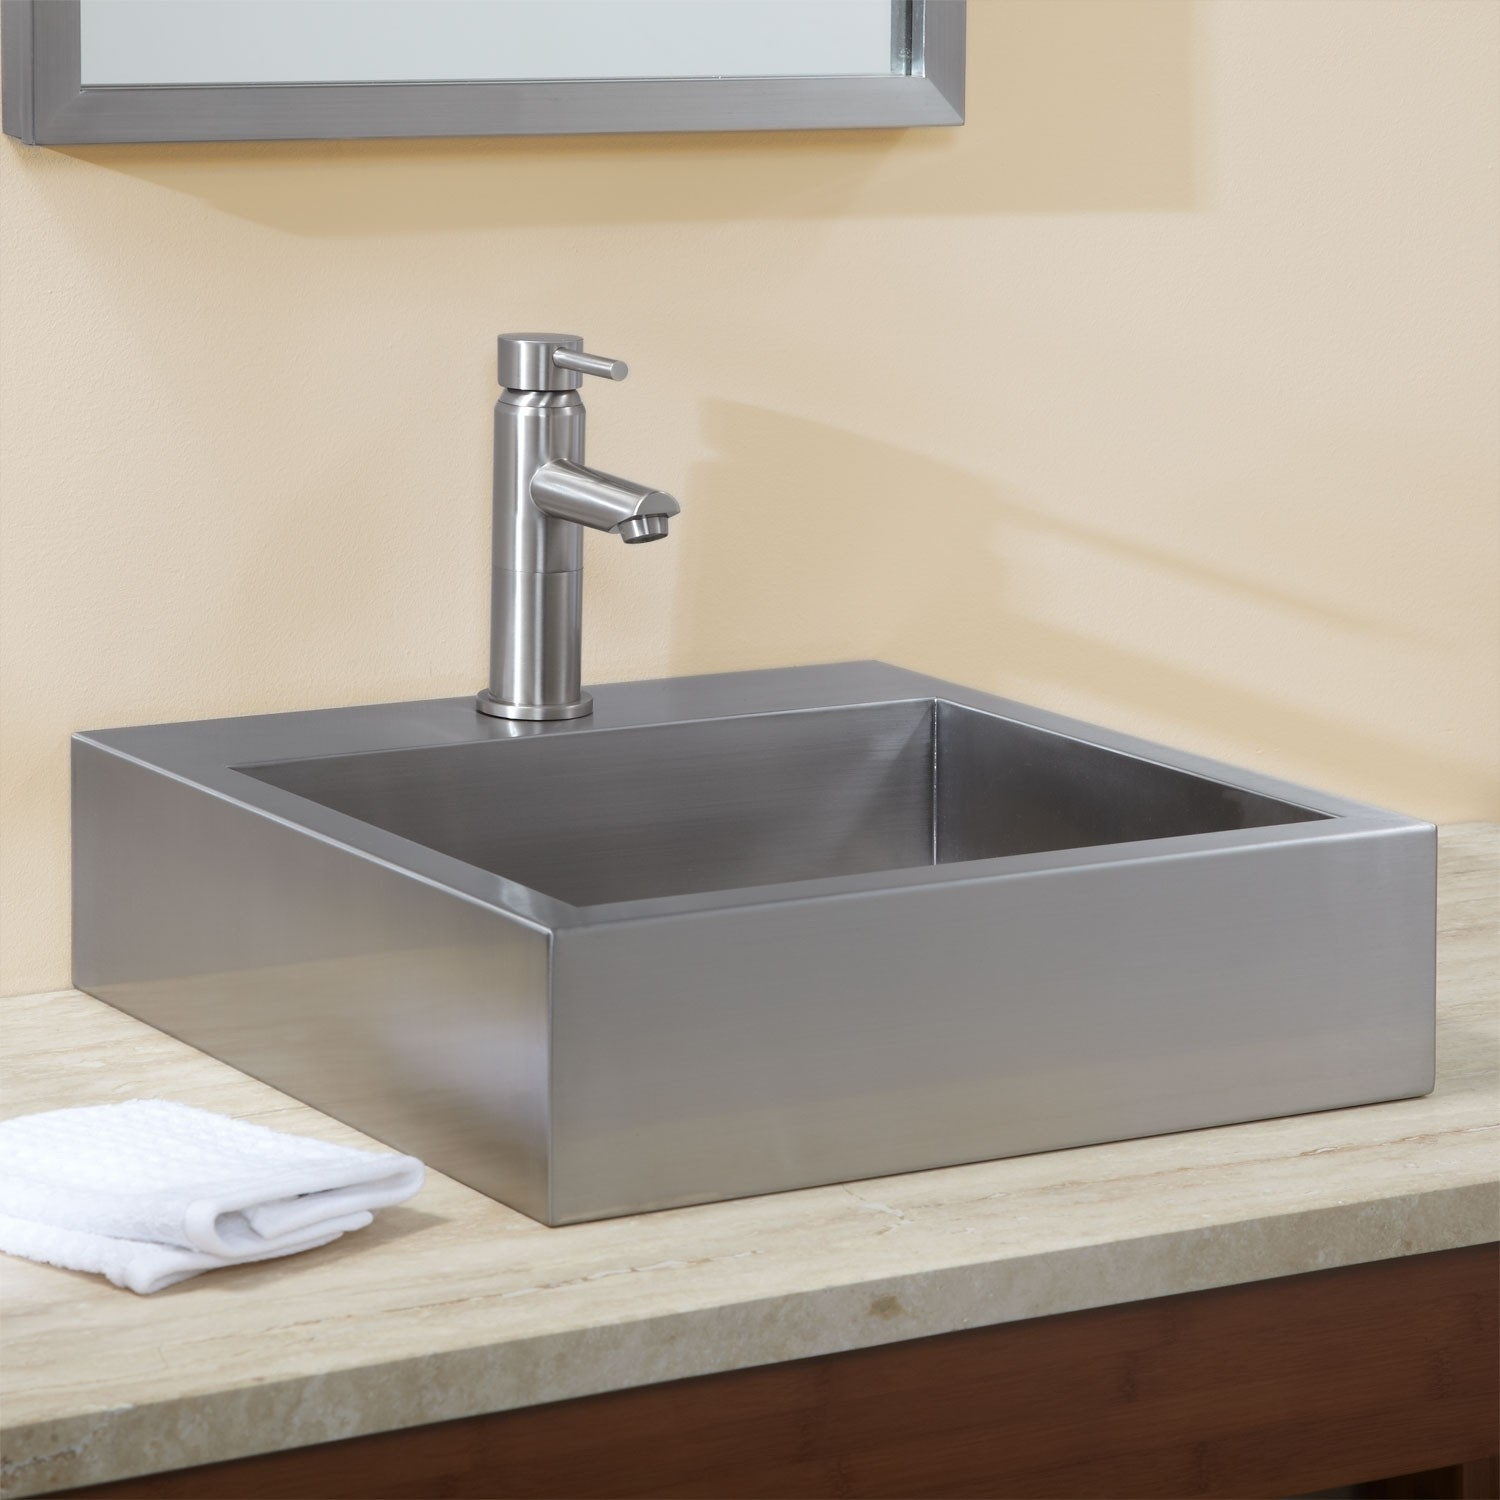 Ideas, square vessel sinks with faucets square vessel sinks with faucets 18 clarendon brushed stainless steel square vessel sink bathroom 1500 x 1500  .